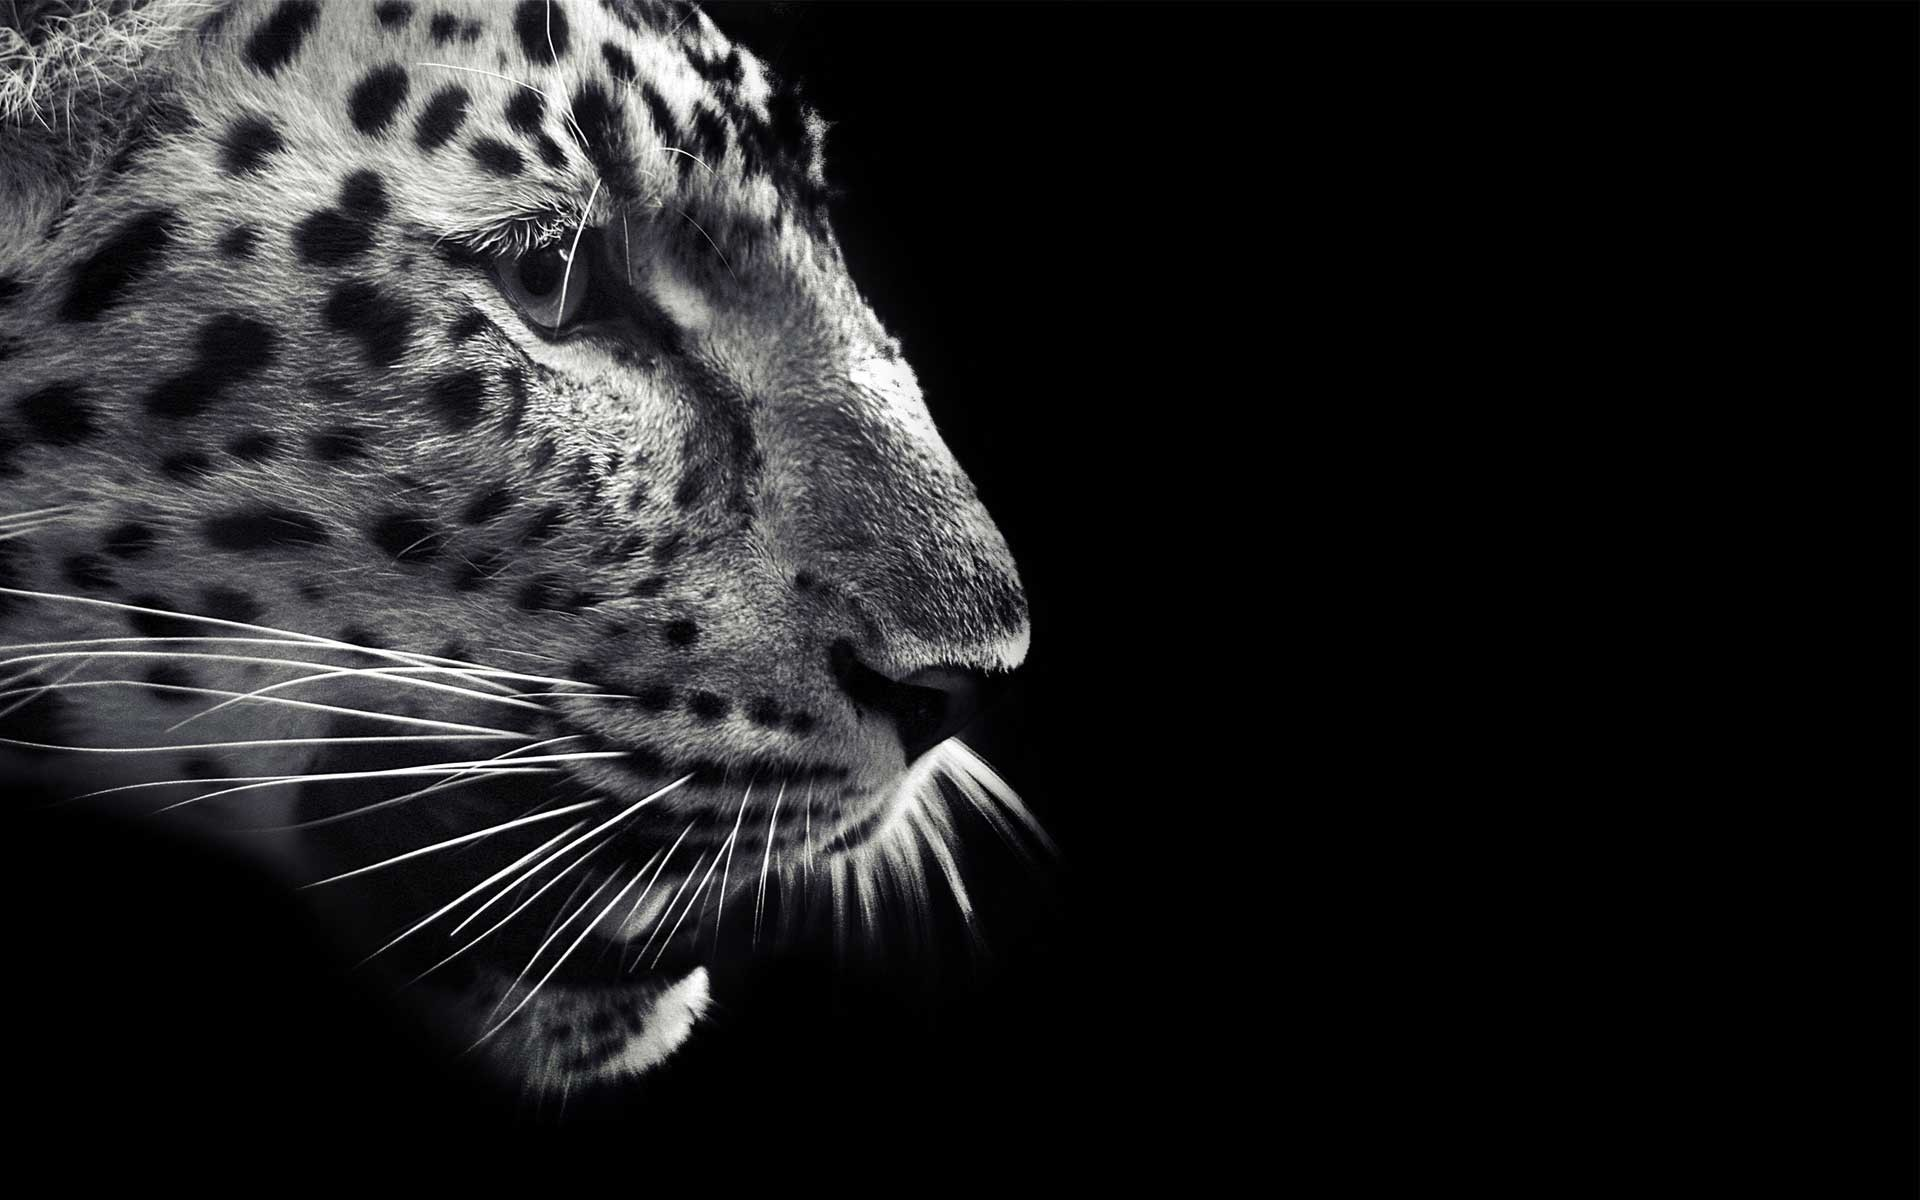 1920x1200 3010674 Jaguar Wallpapers | Download for Free